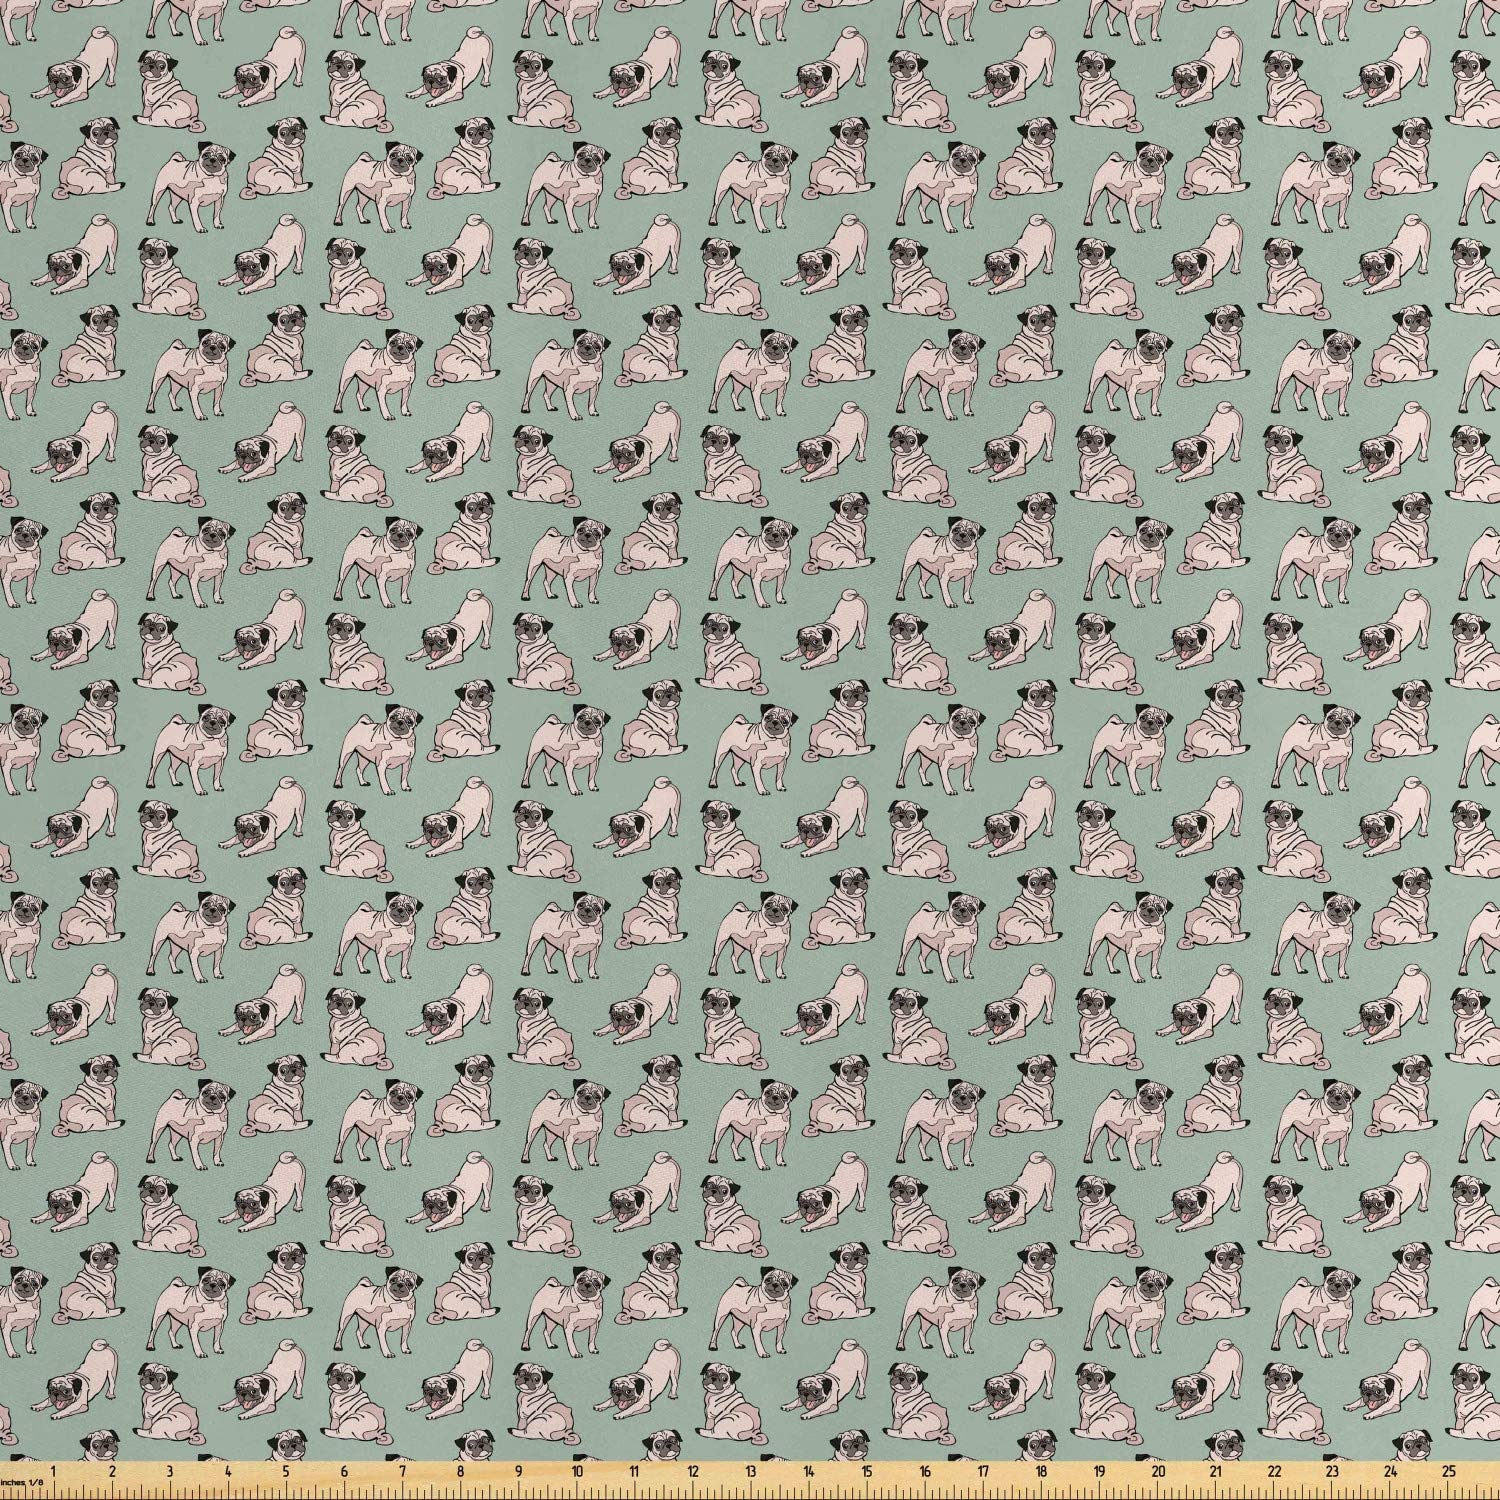 Ambesonne Pug Fabric by The Yard, Dogs with Various States Sitting Standing Stretching Cartoon Style Pet Drawing, Decorative Satin Fabric for Home Textiles and Crafts, Turquoise